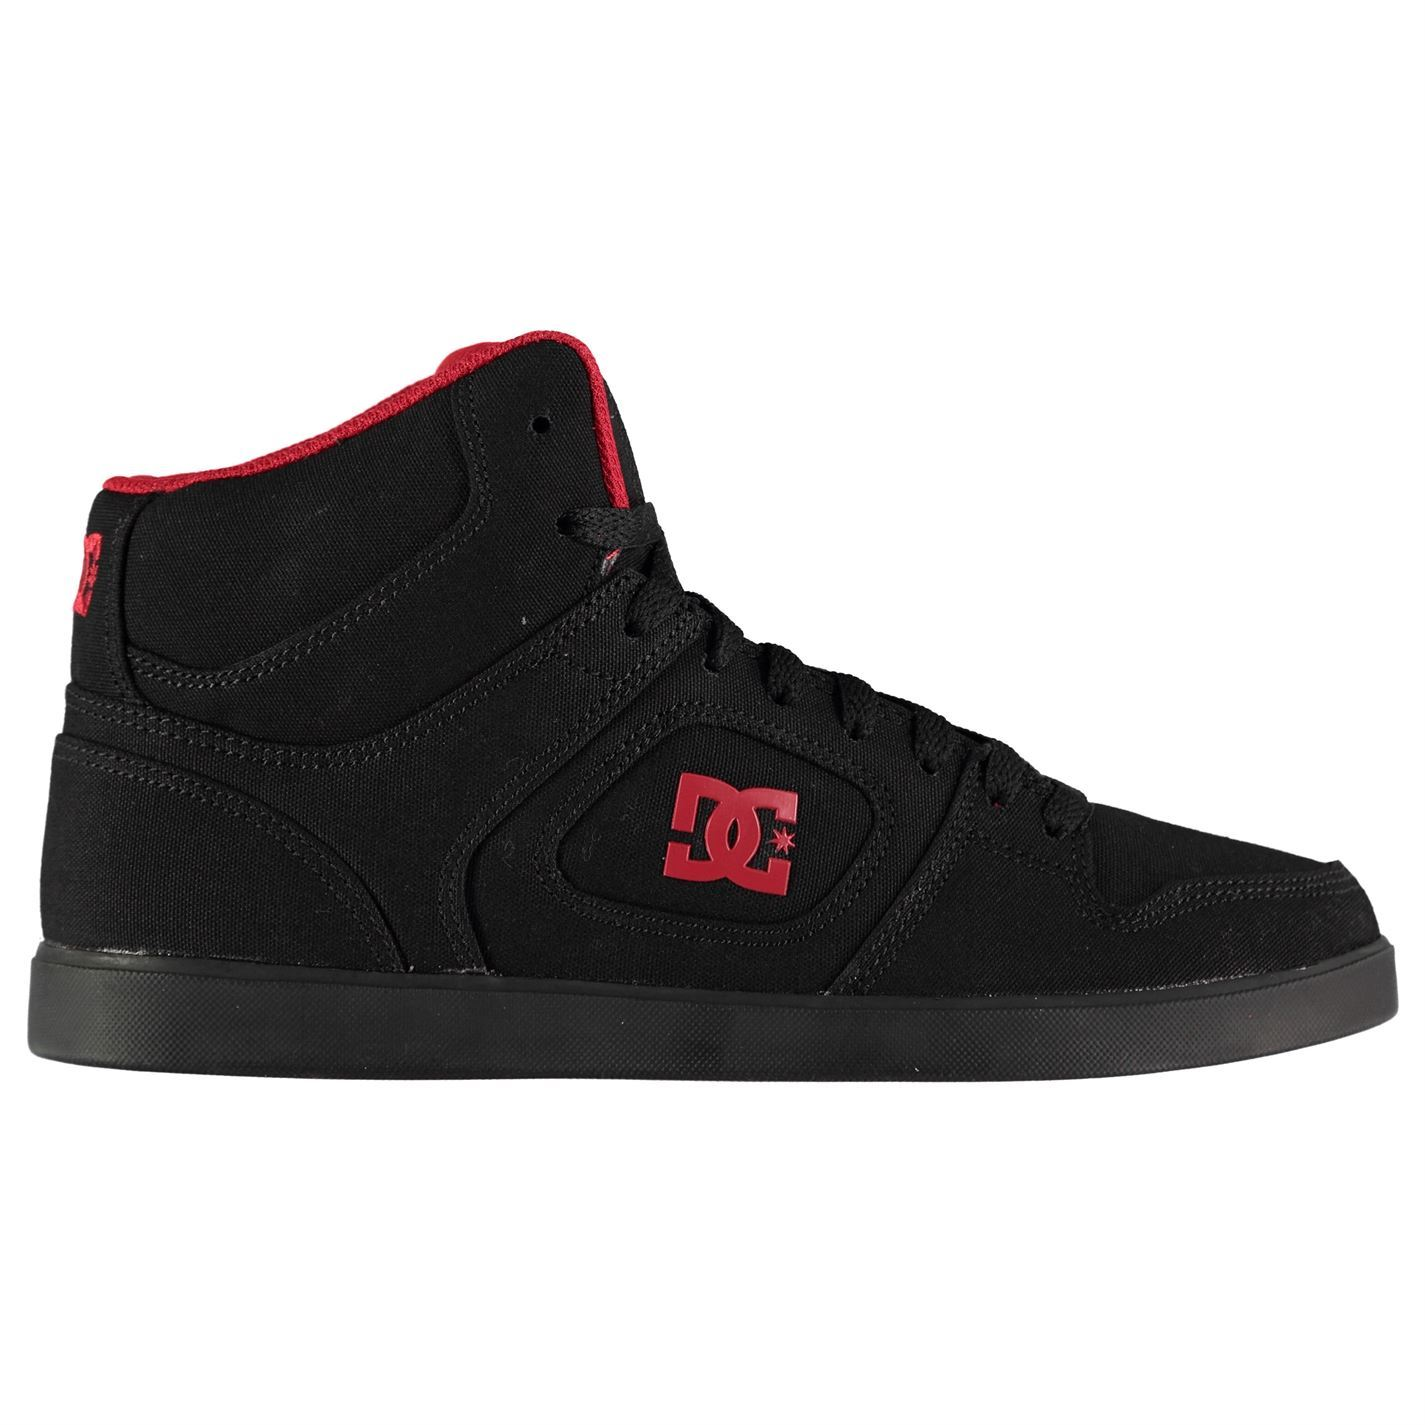 Dc Union High Top Skate Shoes Mens Black Red Skateboarding Trainers